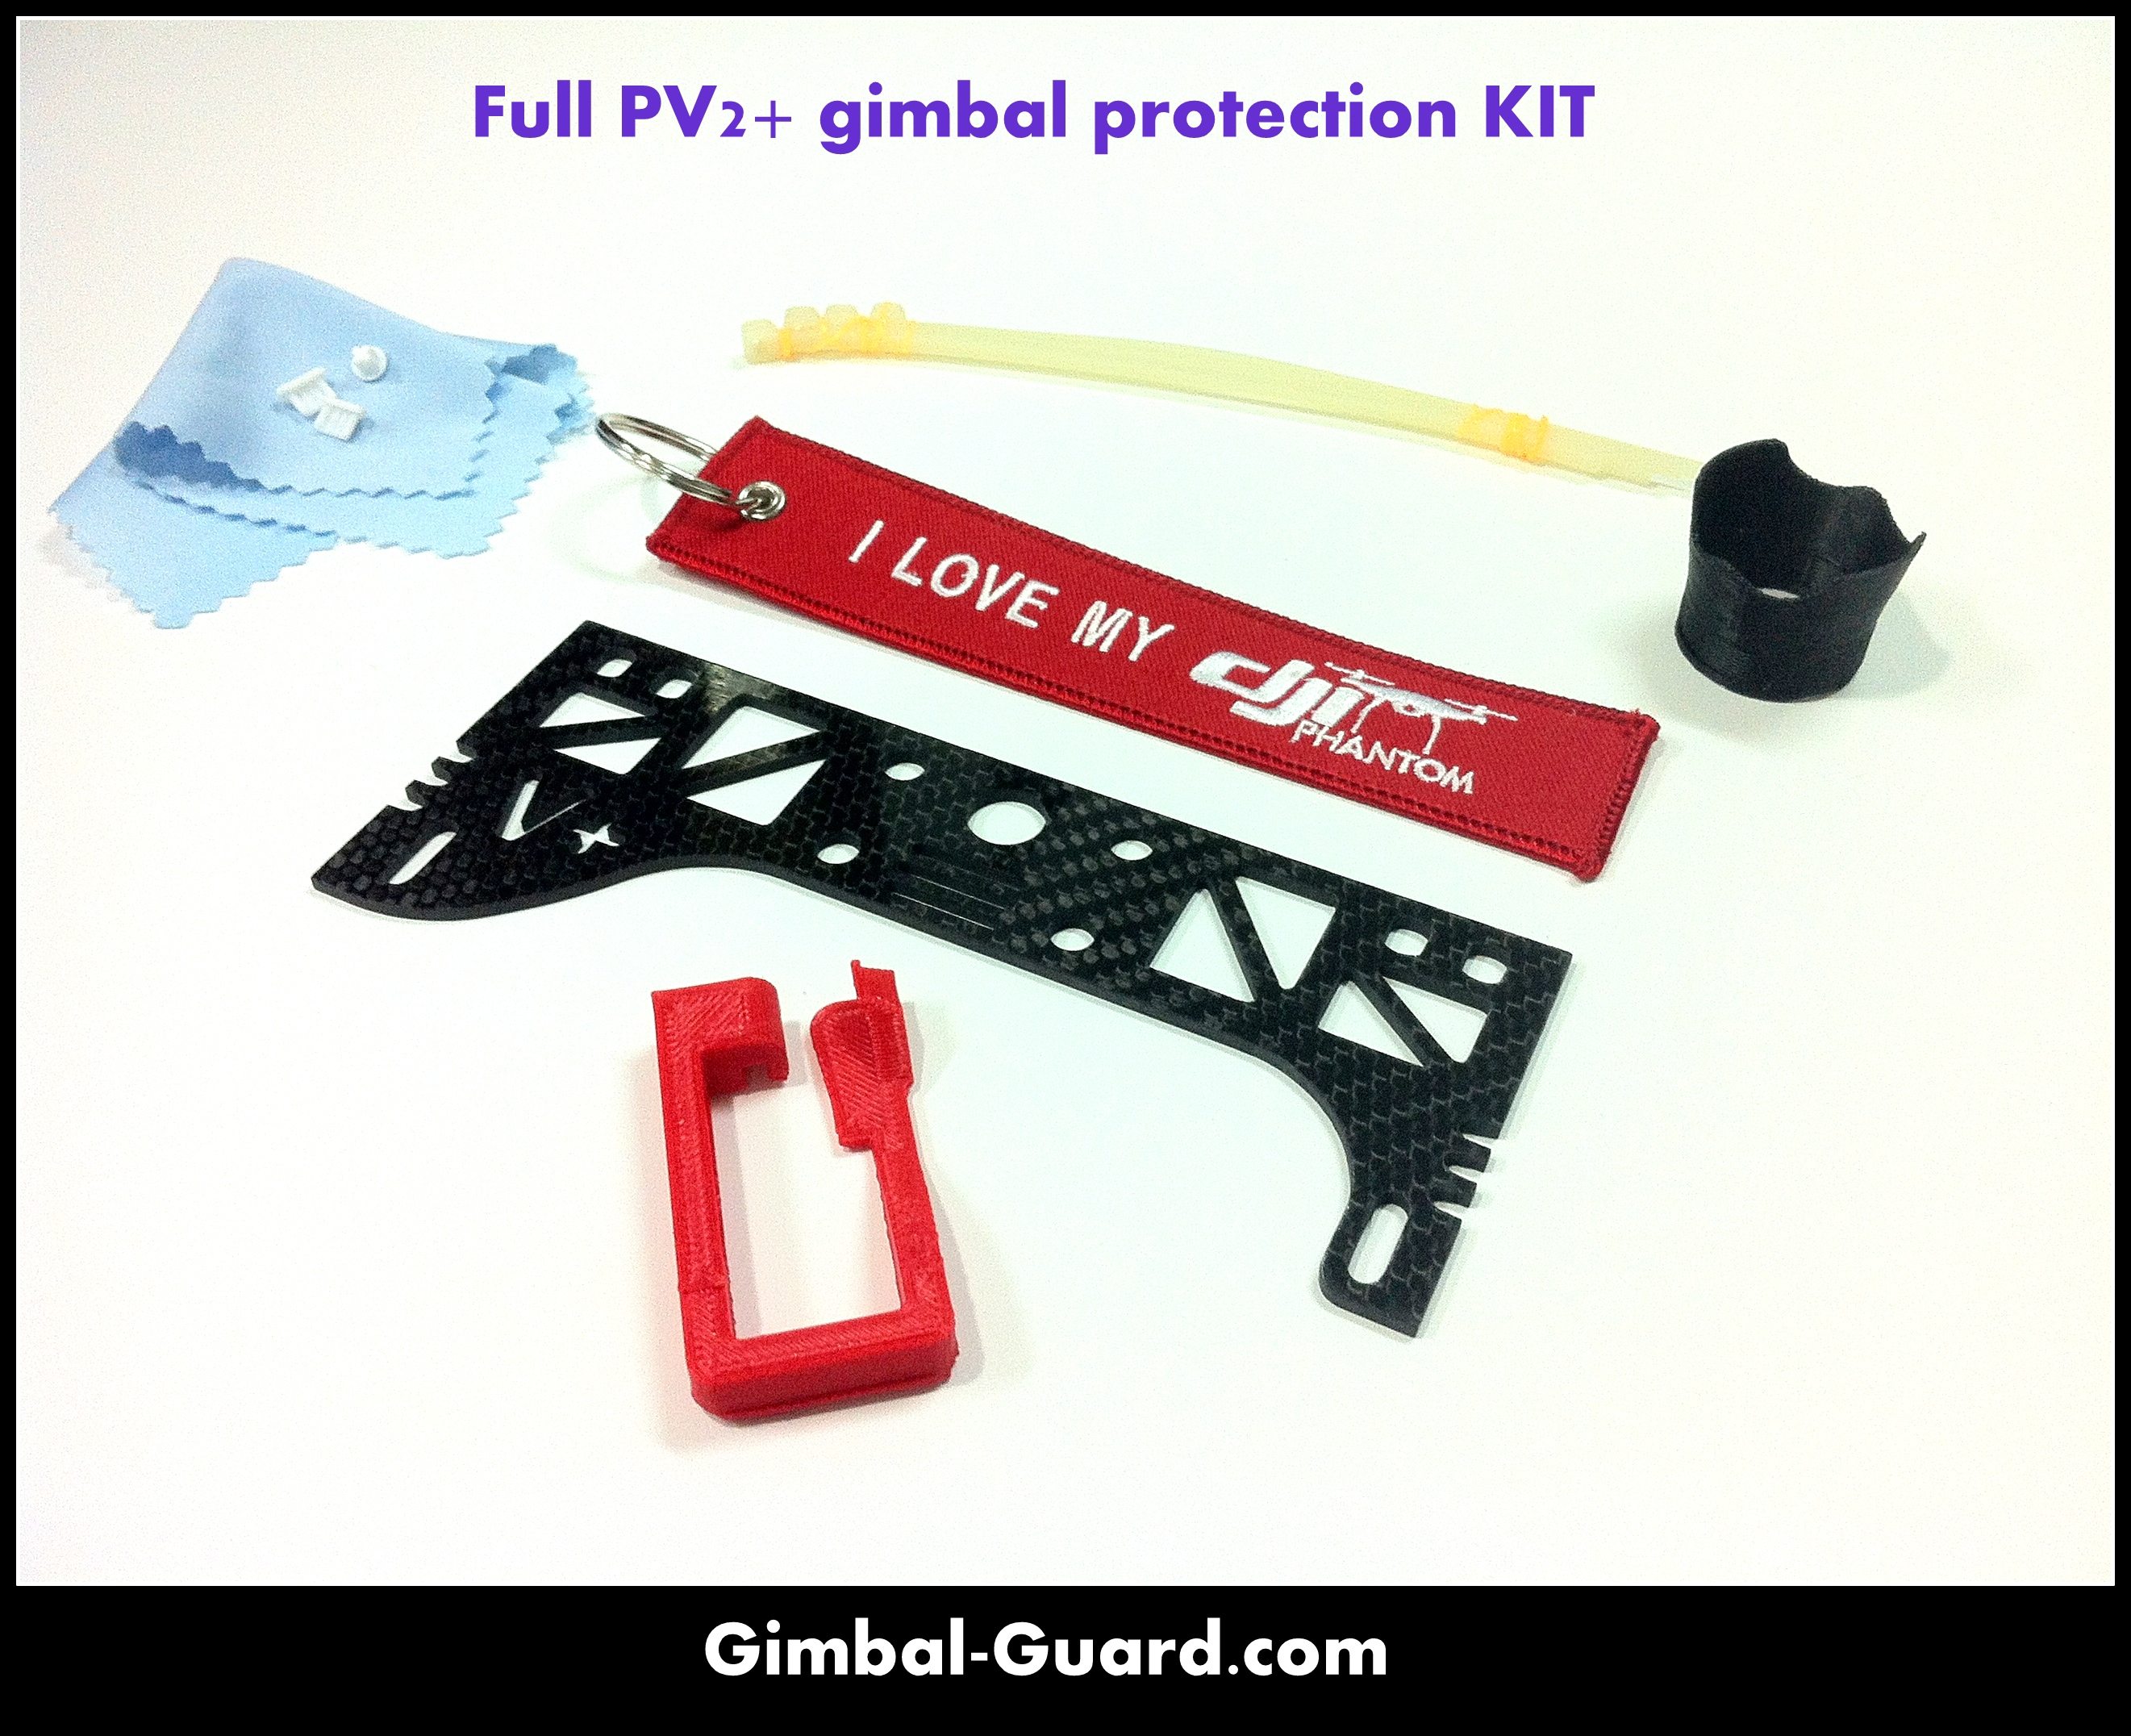 Gimbal-Guard Kit